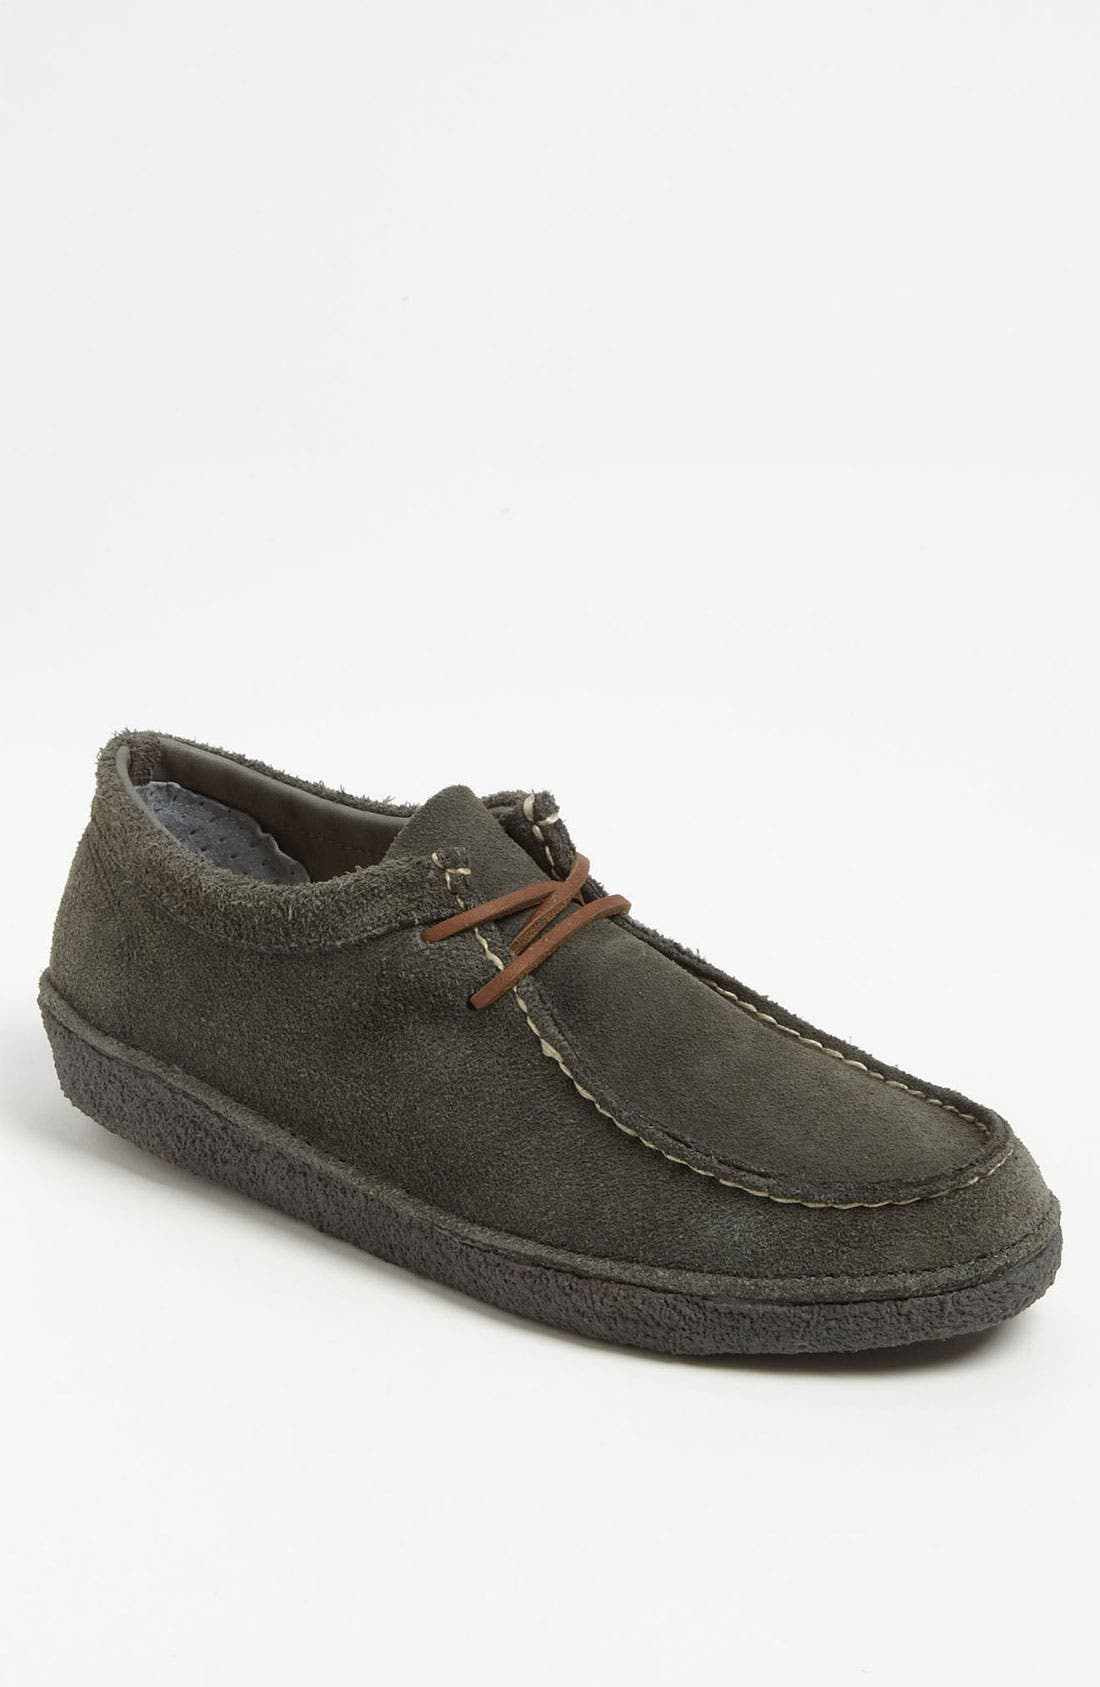 Alternate Image 1 Selected - SeaVees '2-Eye Oxford' Moccasin